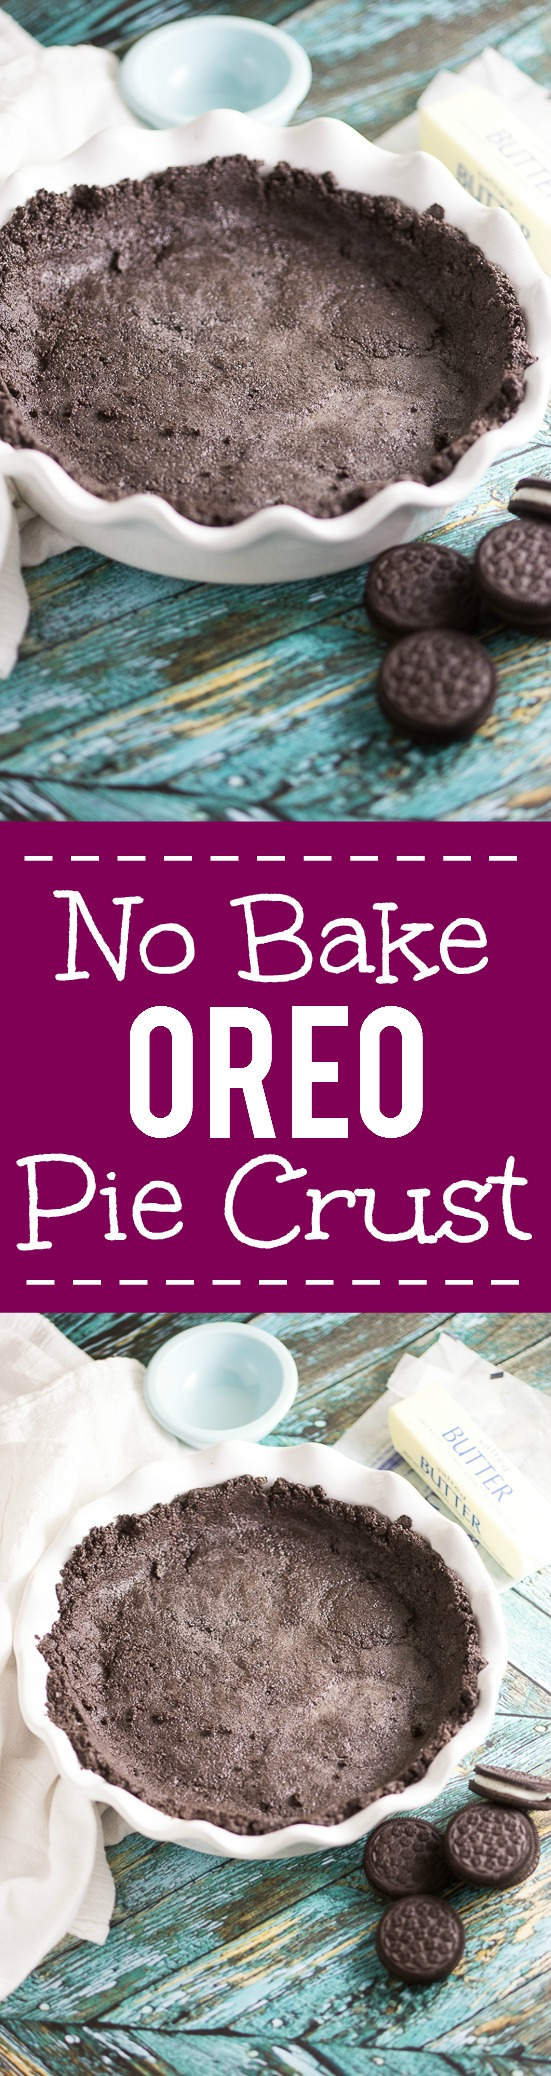 No Bake Oreo Cookie Pie Crust - This chocolate, easy Oreo crust recipe is simple and delicious, with just 2 ingredients. Perfect way to make your favorite no bake pie or cheesecake even more fabulous! Such an easy pie crust recipe and so yummy!